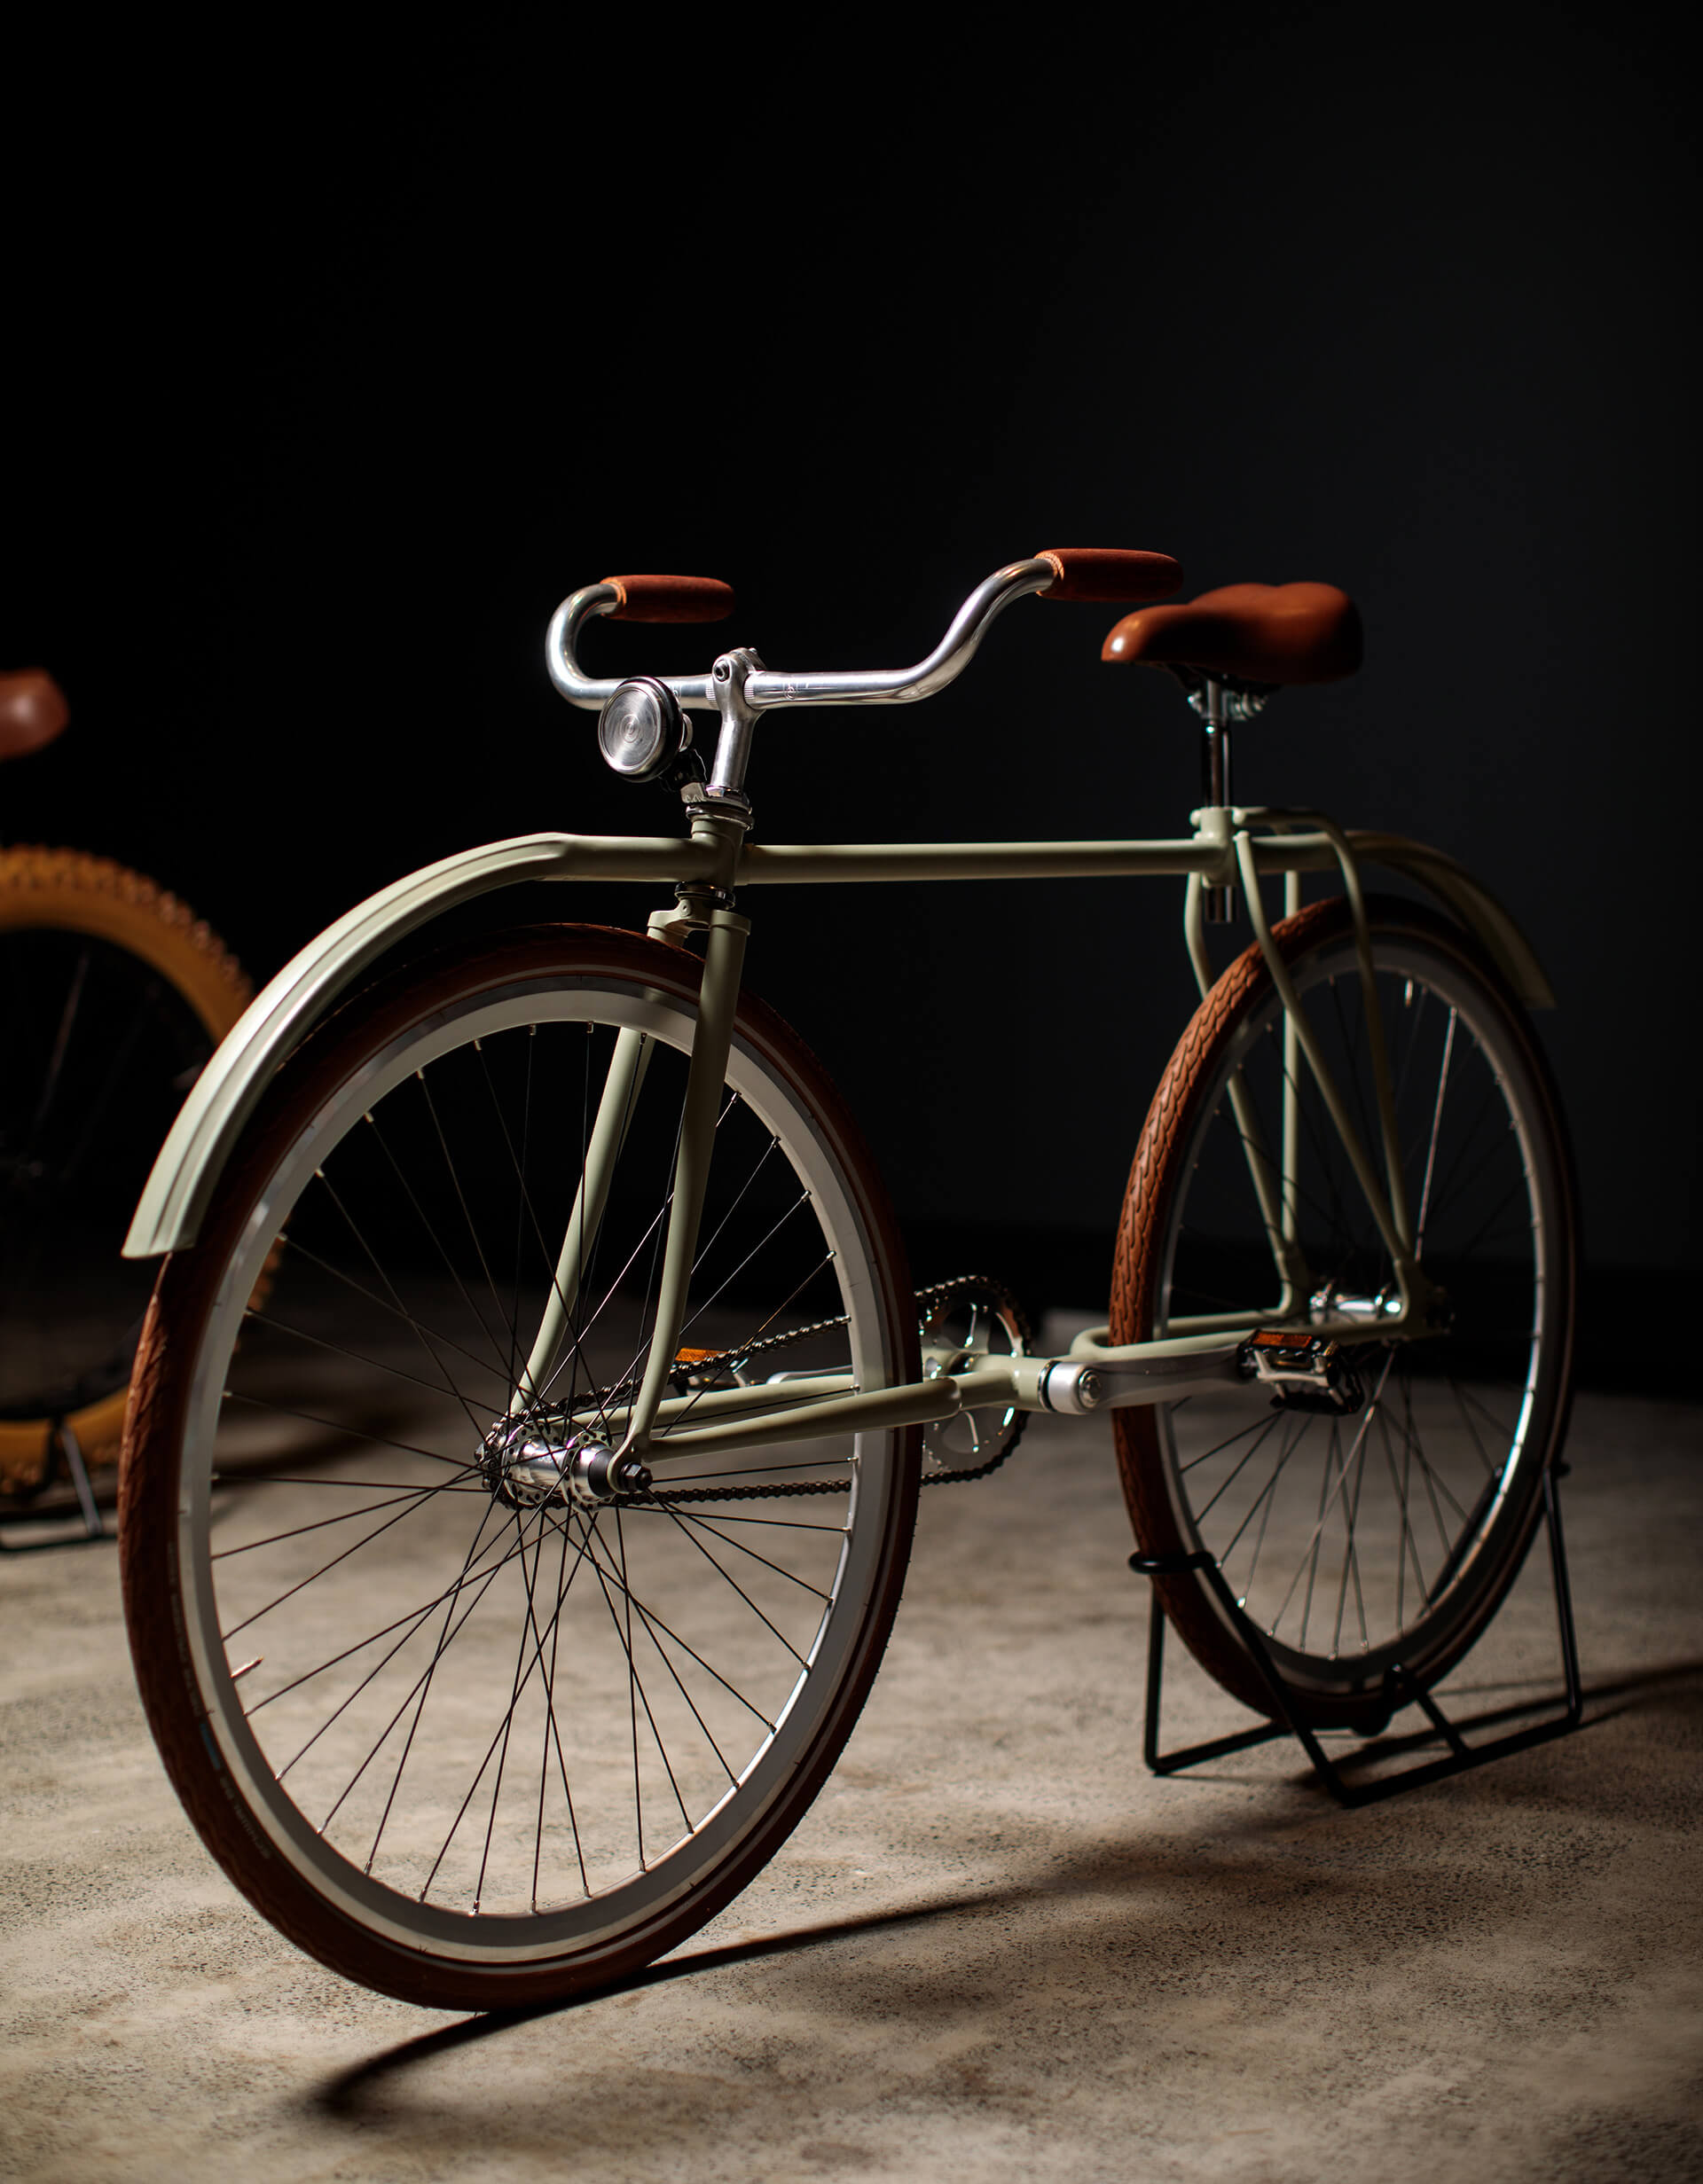 Prototype of bicycle design by Rosalba exhibited at the Museum of Old and New Art, Tasmania, Australia | Velocipedia| Gianluca Gimini | STIRworld